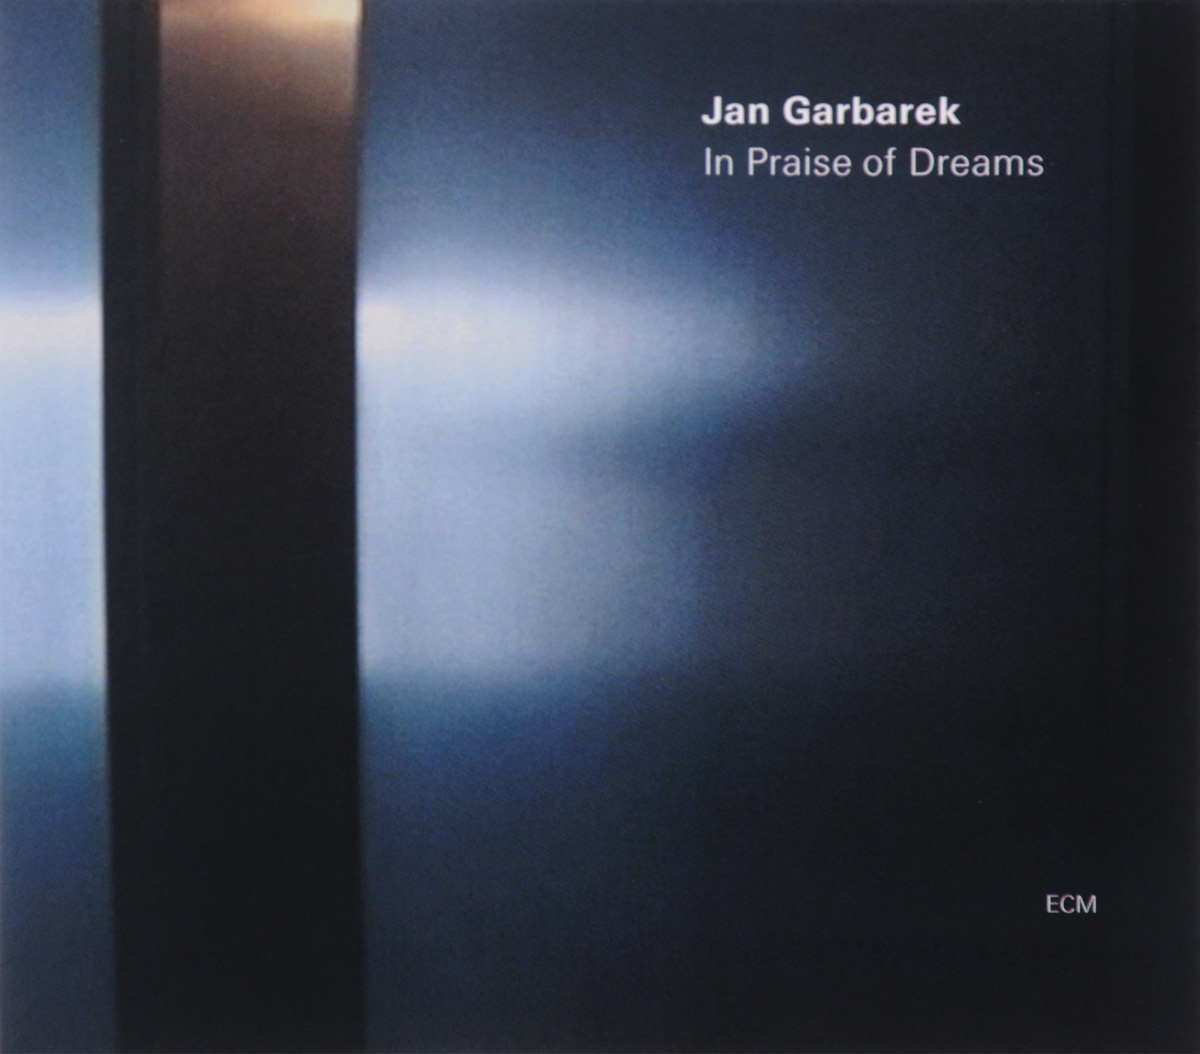 Ян Гарбарек,Ким Кашкашьян,Маню Катче Jan Garbarek. In Praise Of Dreams in praise of savagery